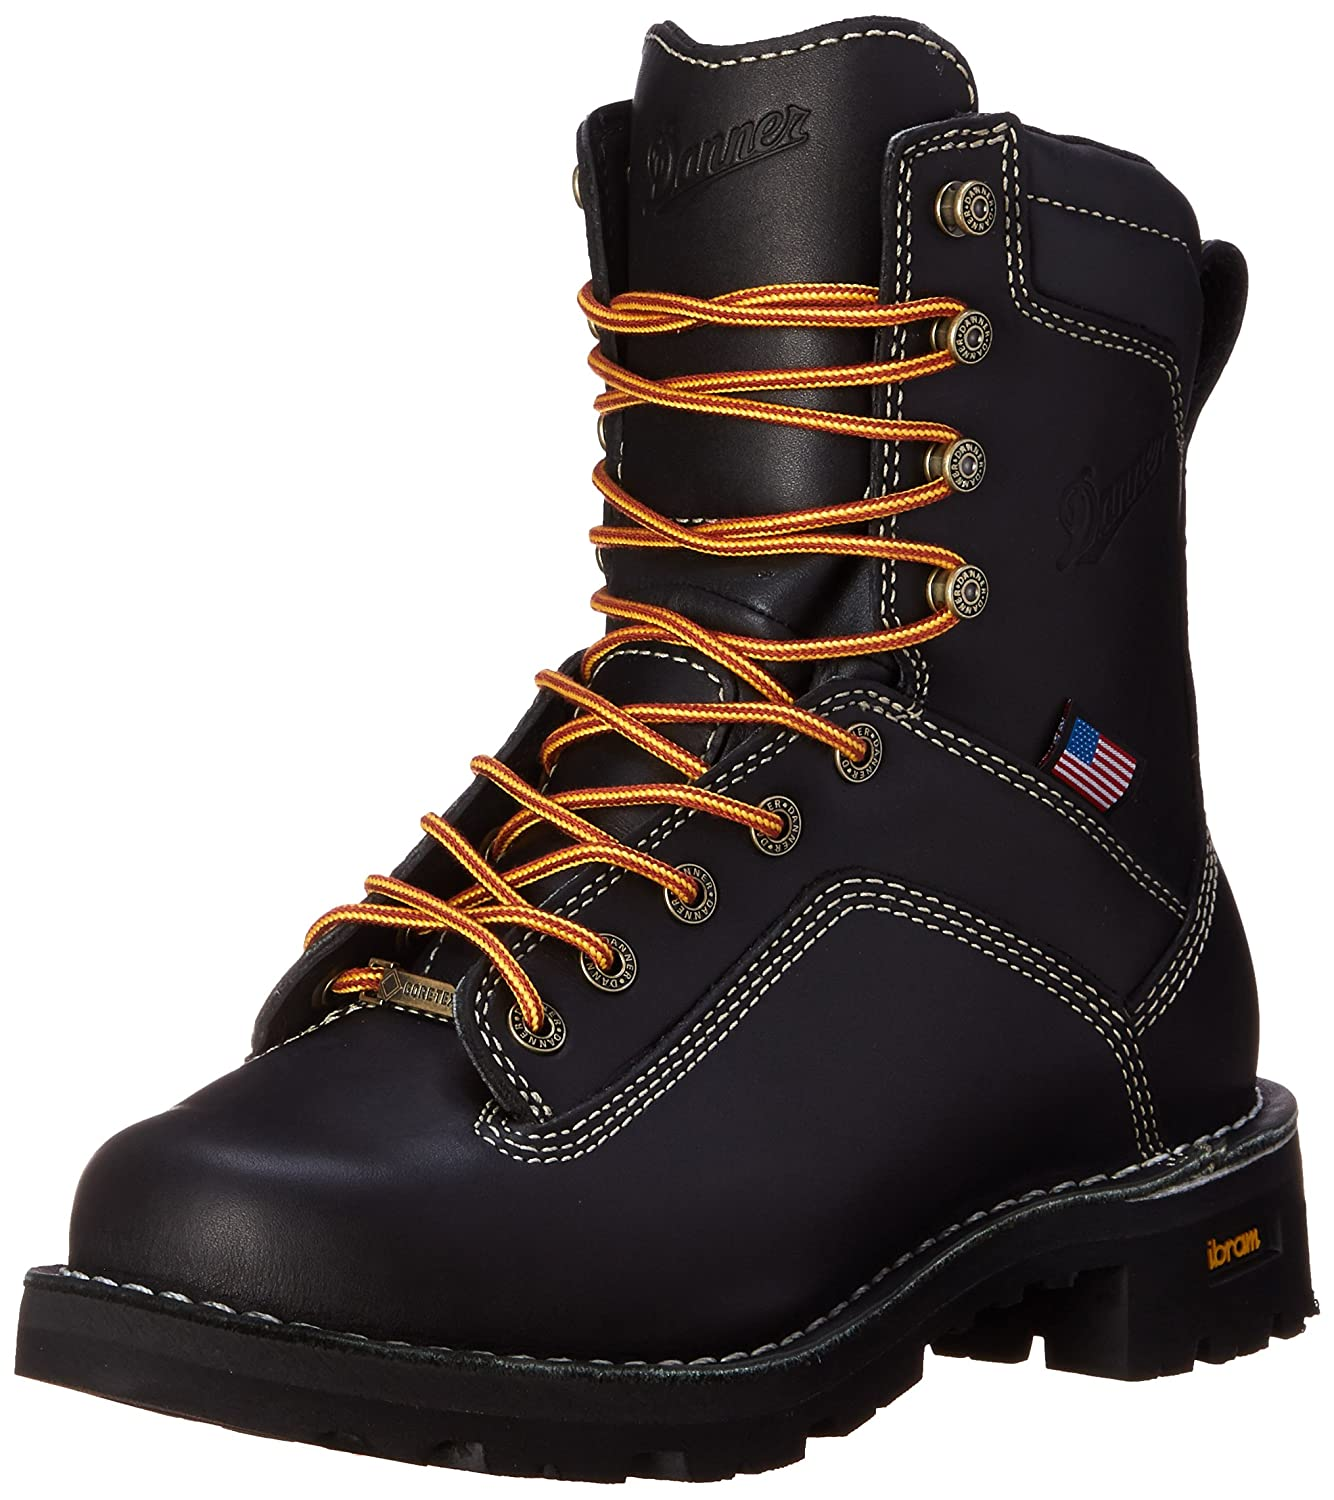 f36ccc97f2a Danner Men's Quarry USA Black Work Boot - 8-Inch